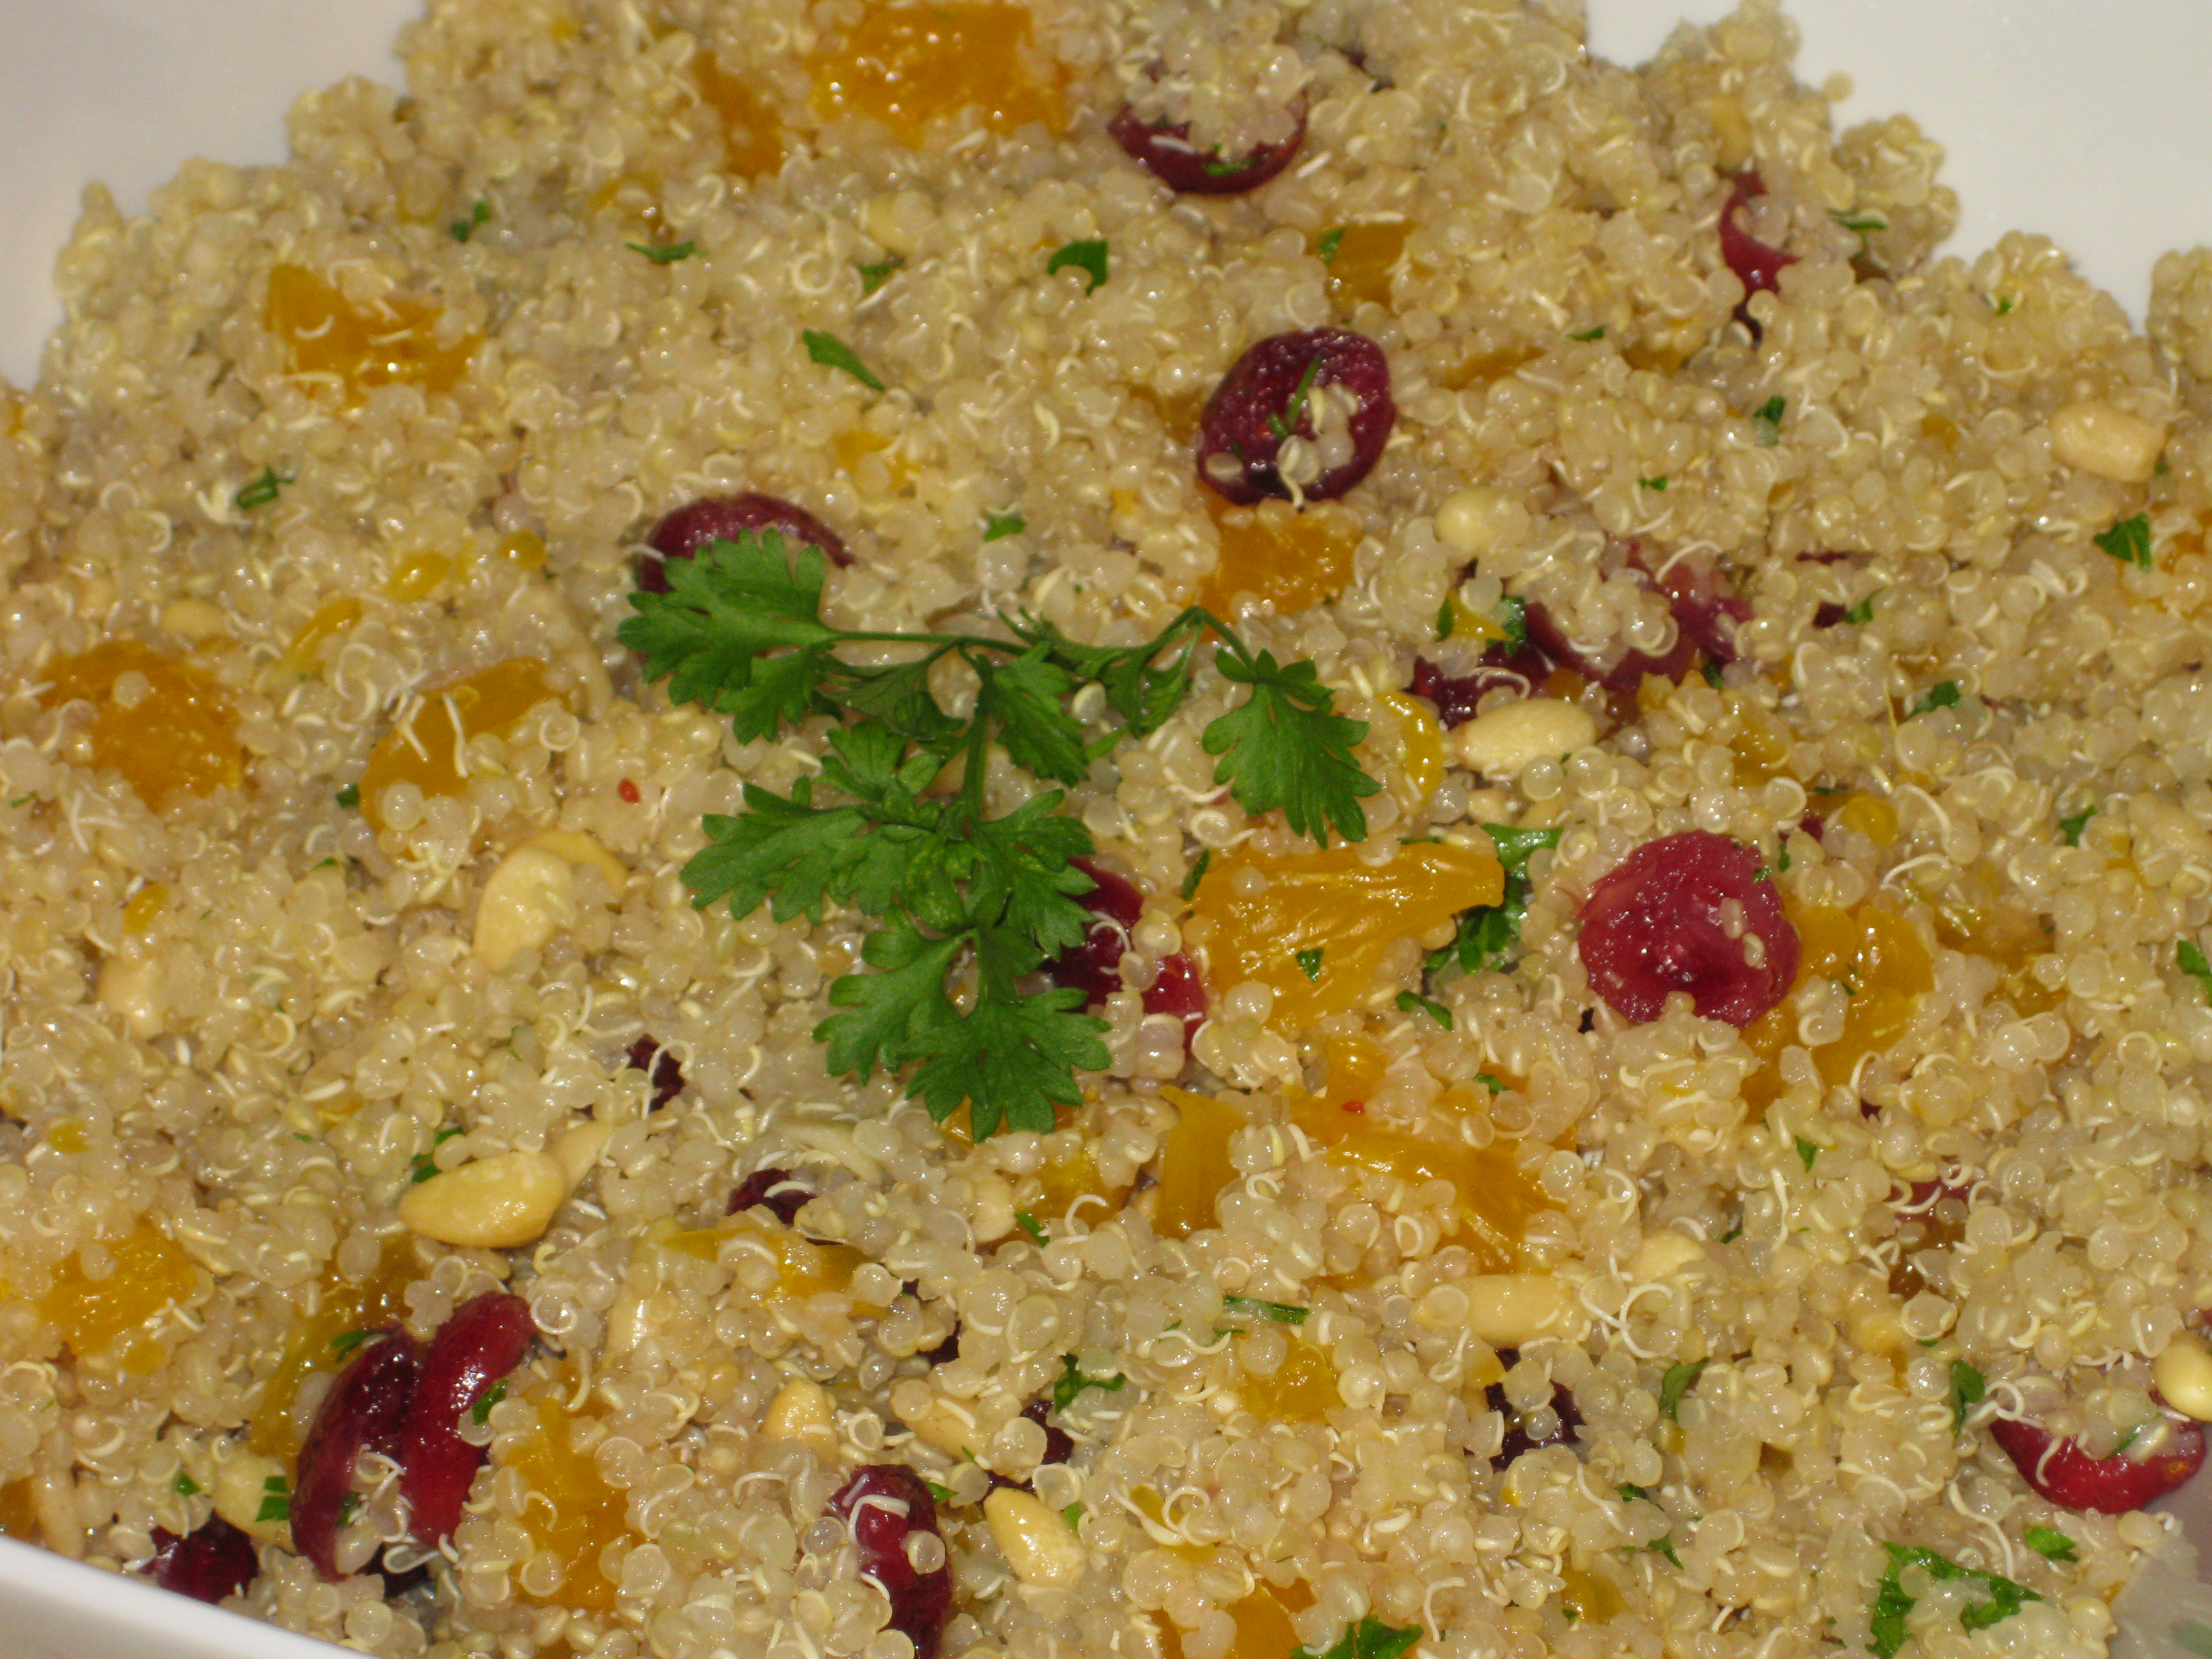 QUINOA SALAD WITH ORANGES AND PINE NUTS